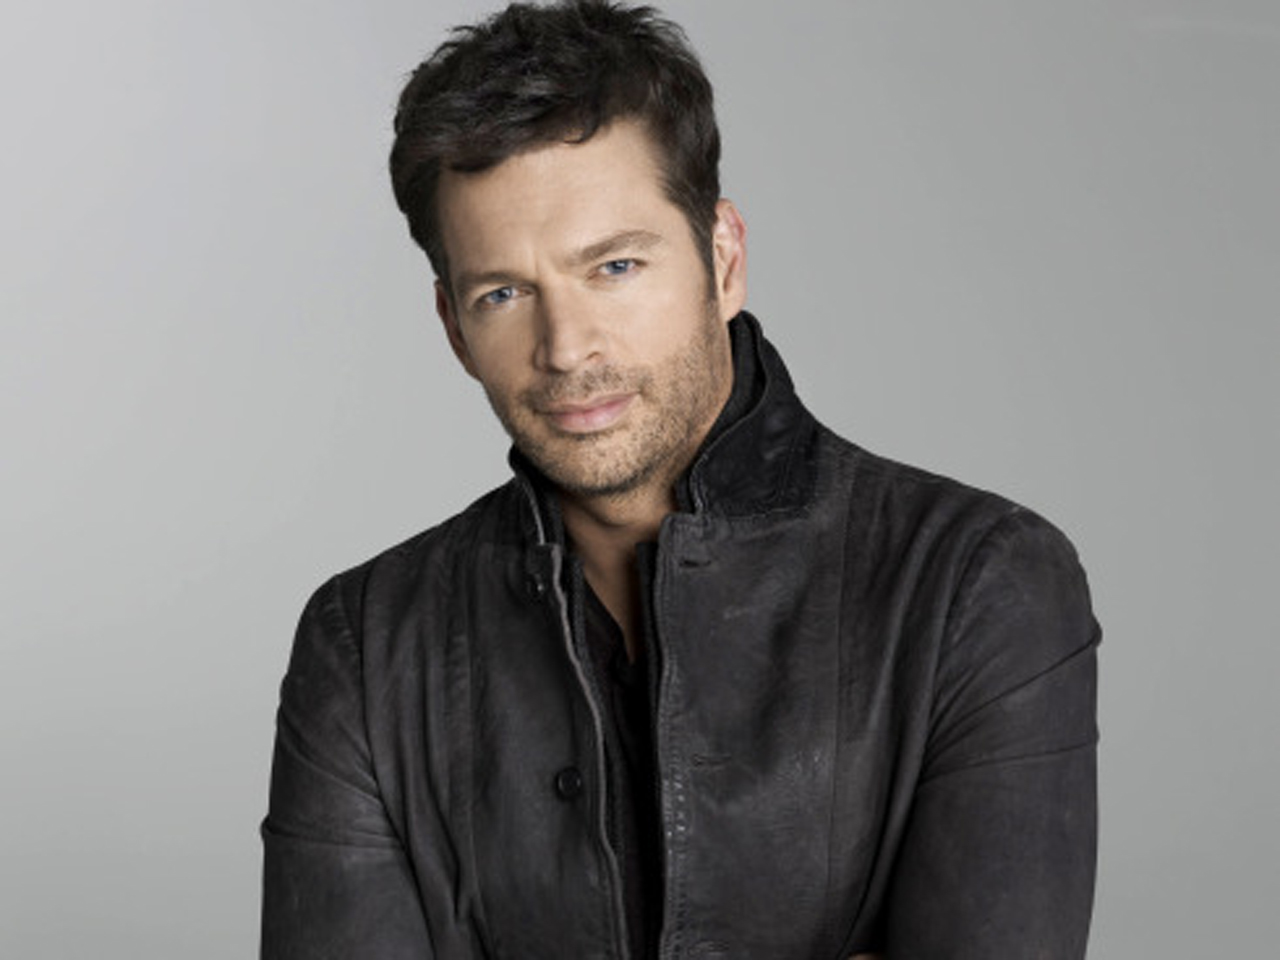 Image: Harry Connick Jr.